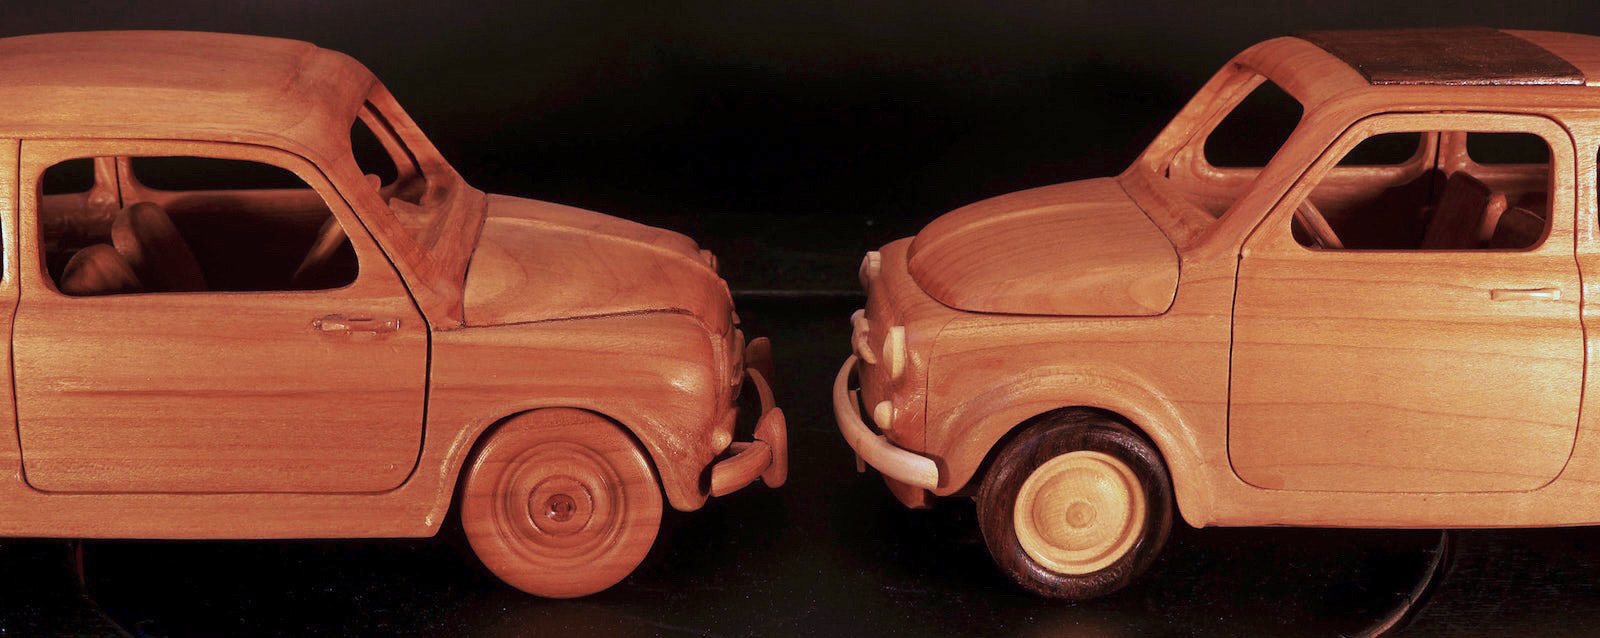 MADE IN ITALY<br>WOOD ART MODELS